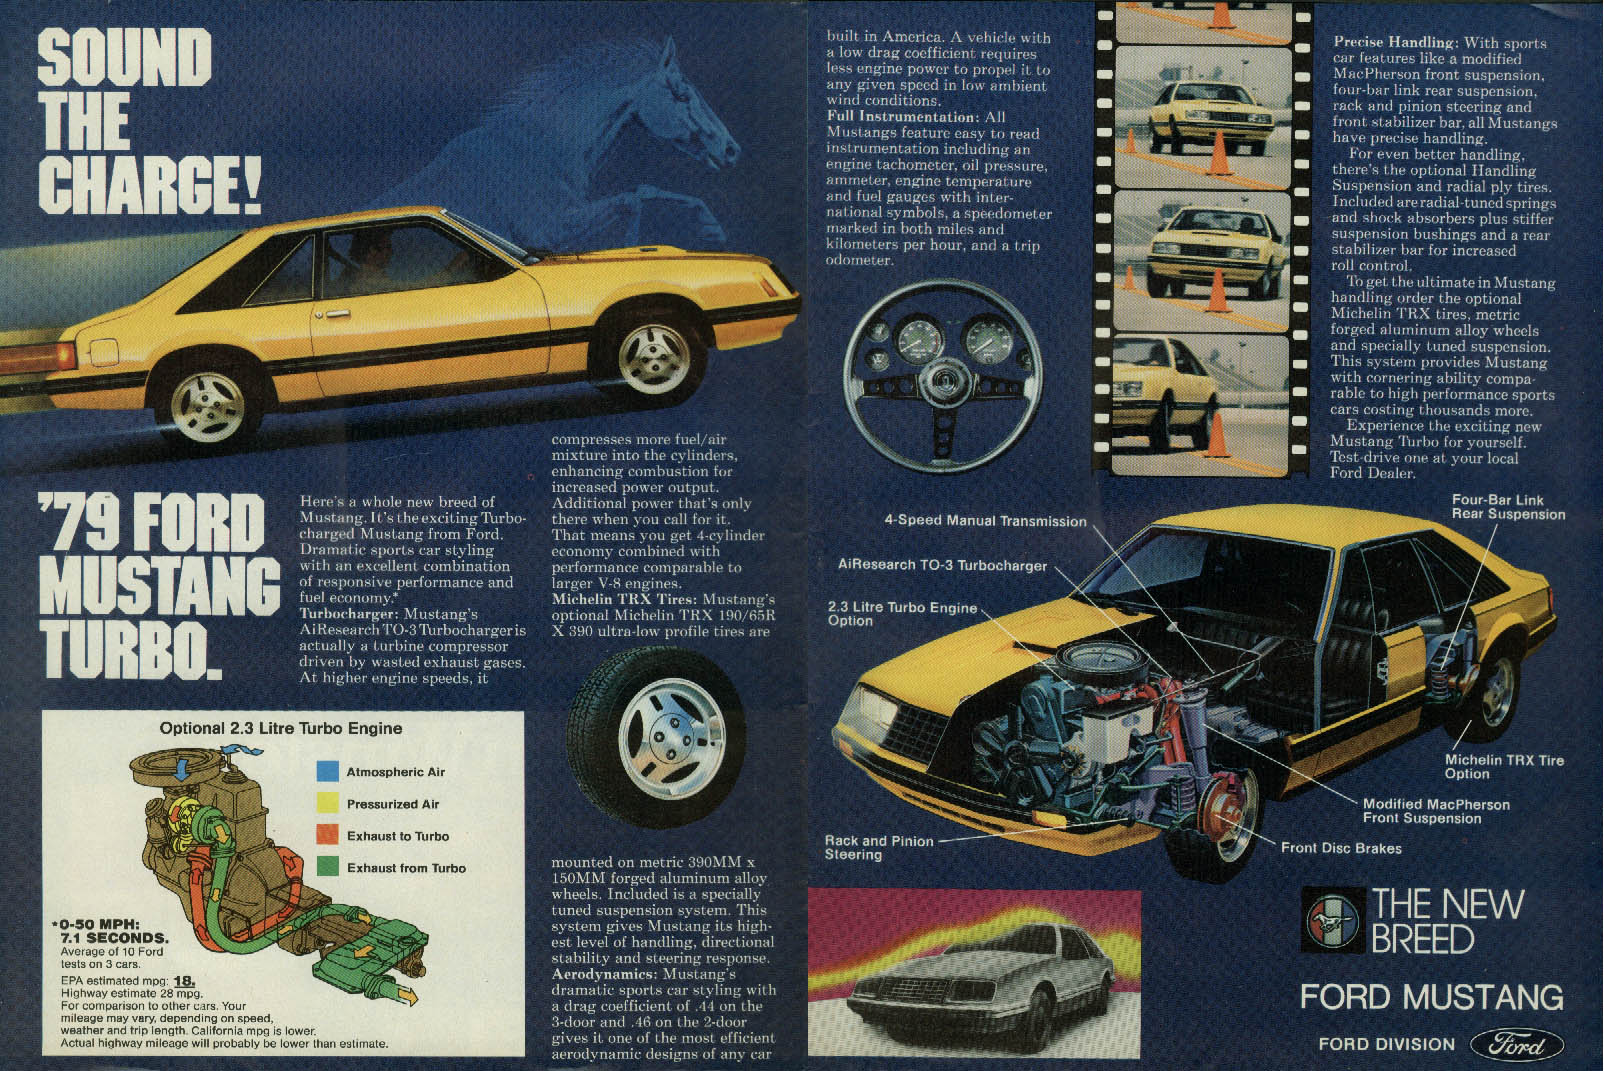 Sound the charge! Ford Mustang Turbo ad 1979